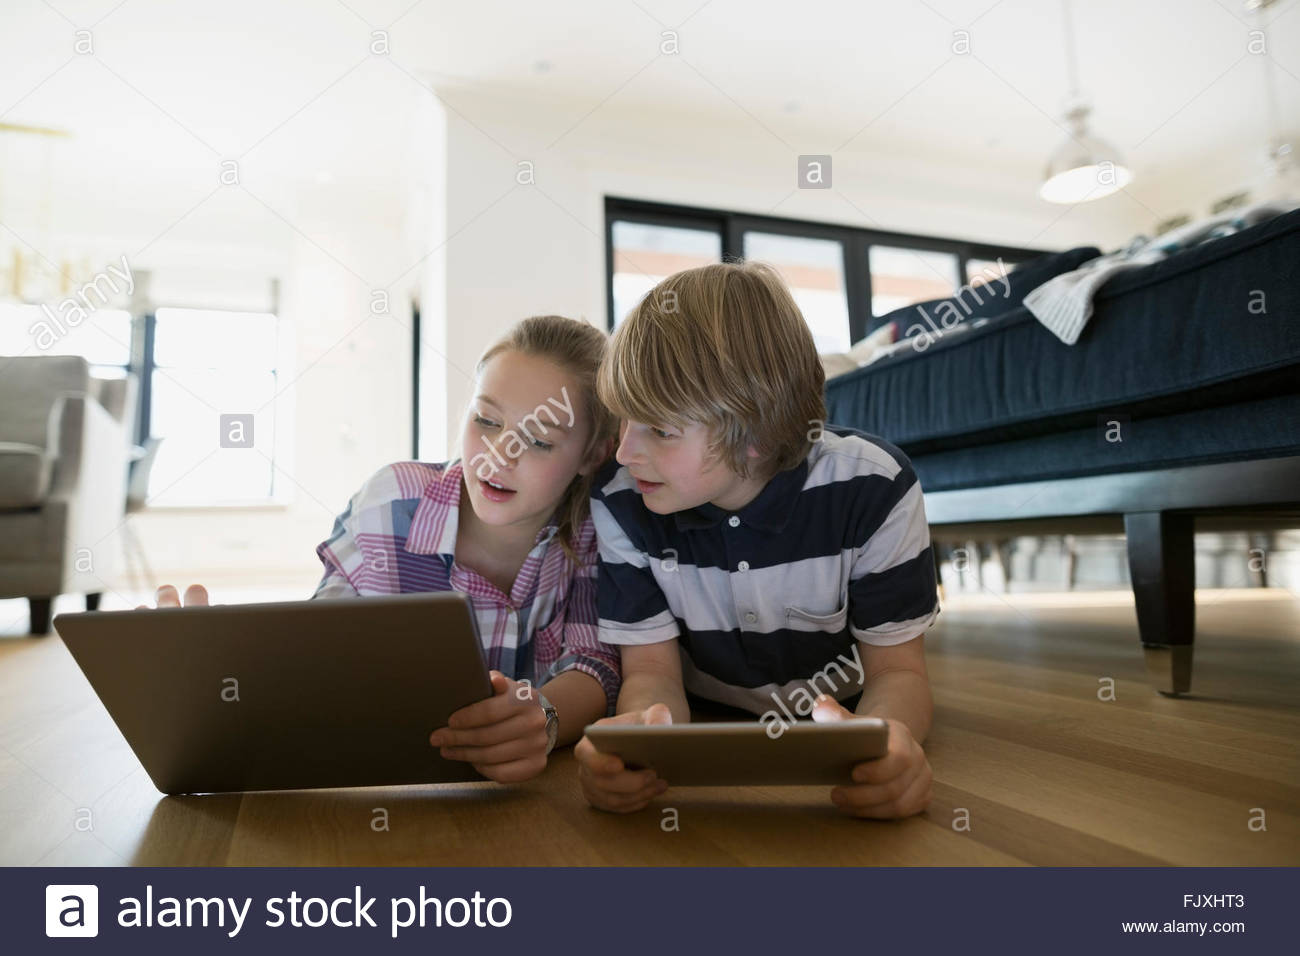 Brother sister using digital tablets living room floor - Stock Image